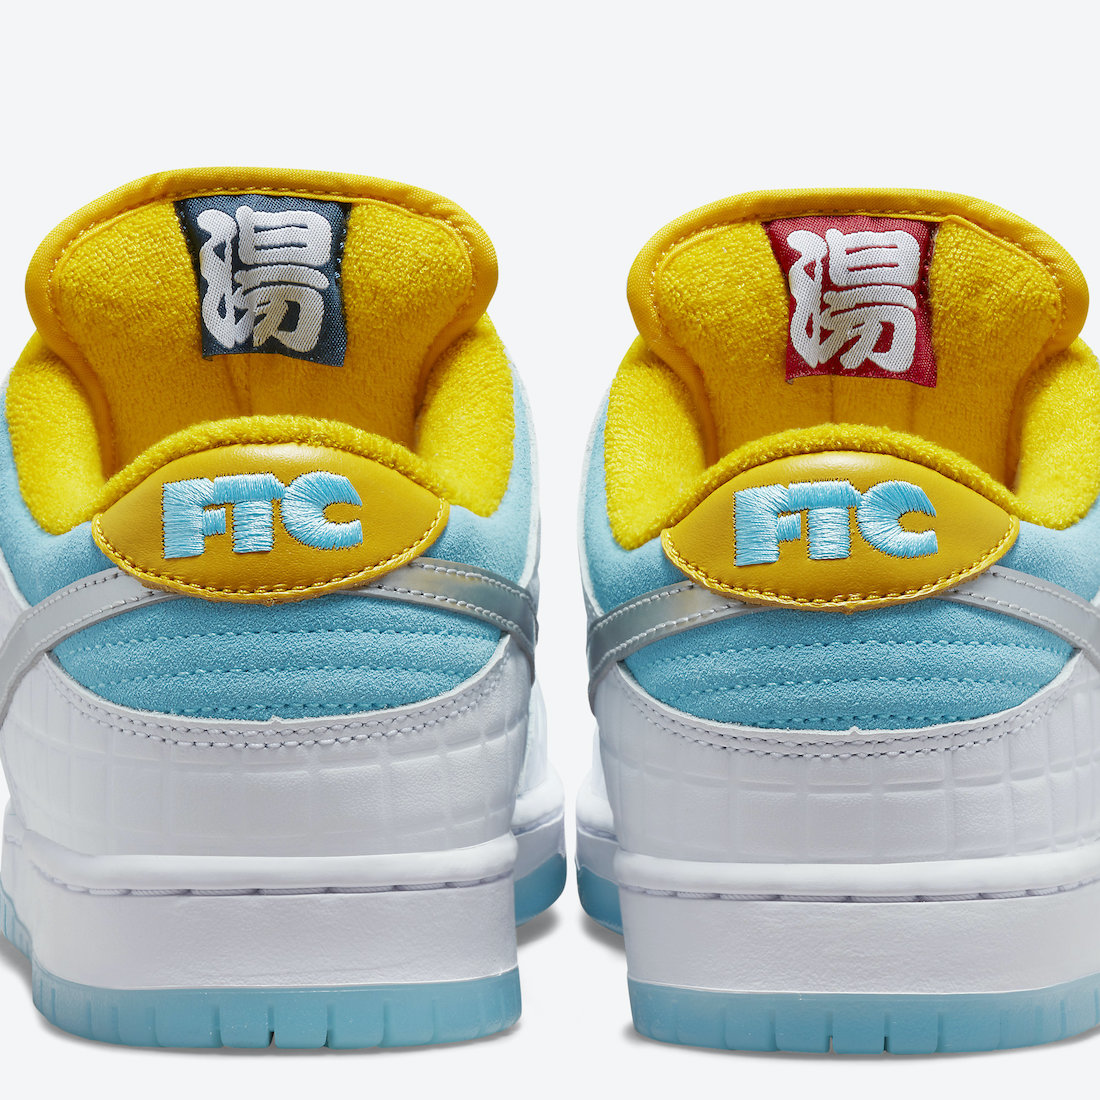 ftc nike sb dunk low bathhouse DH7687 400 release date 9